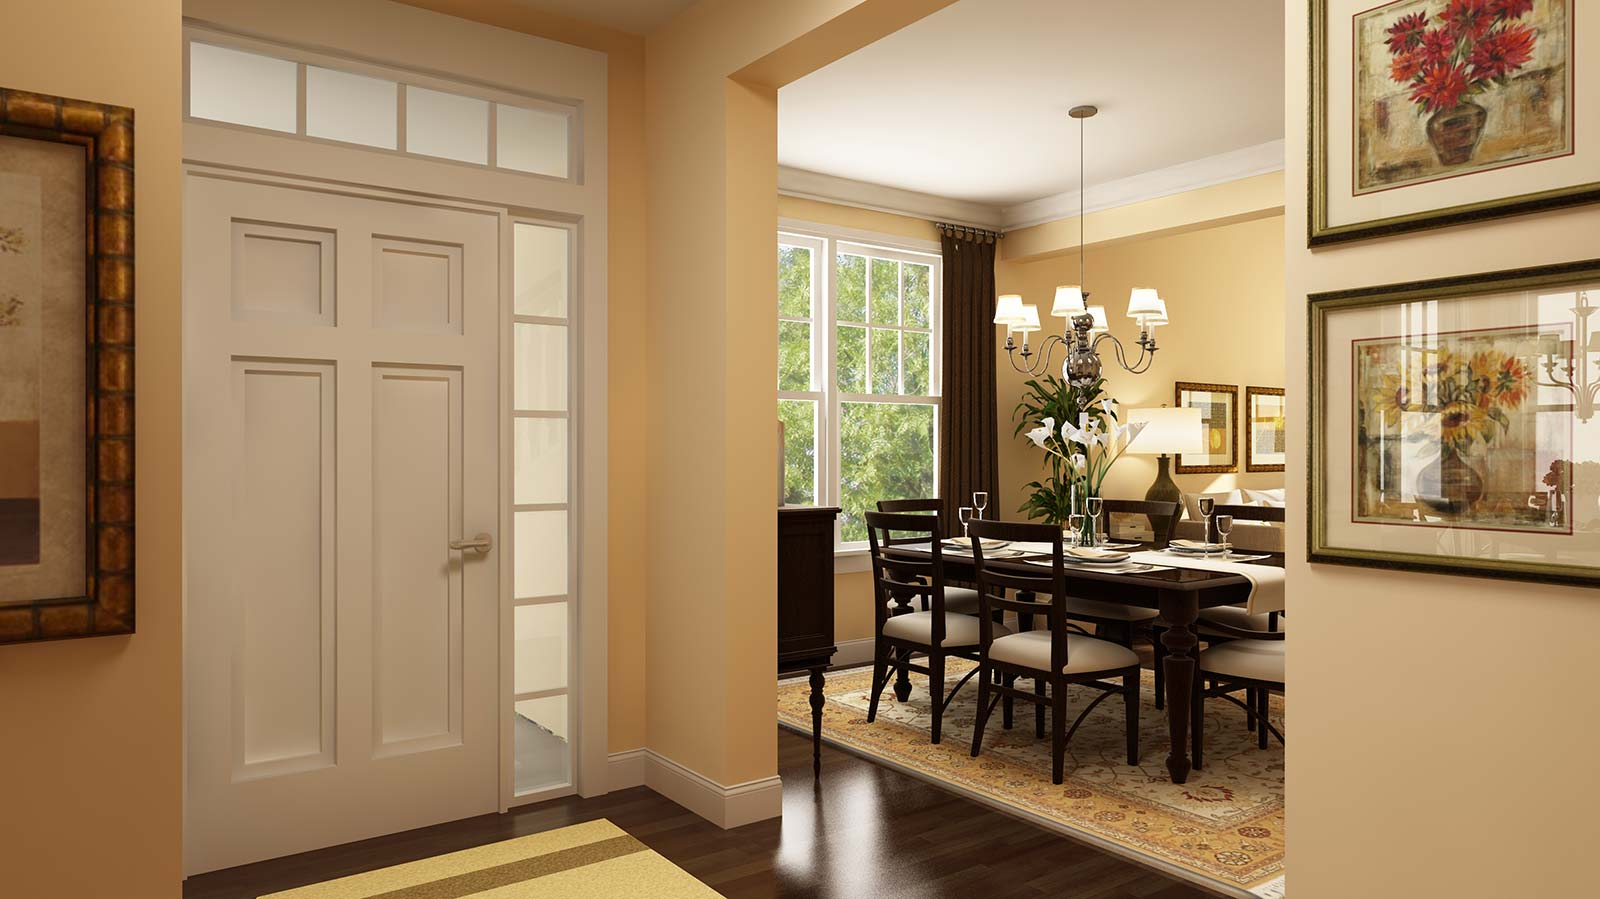 Dining Room Entry Designs 55 43 Communities In Ma Southport On Cape Cod Award